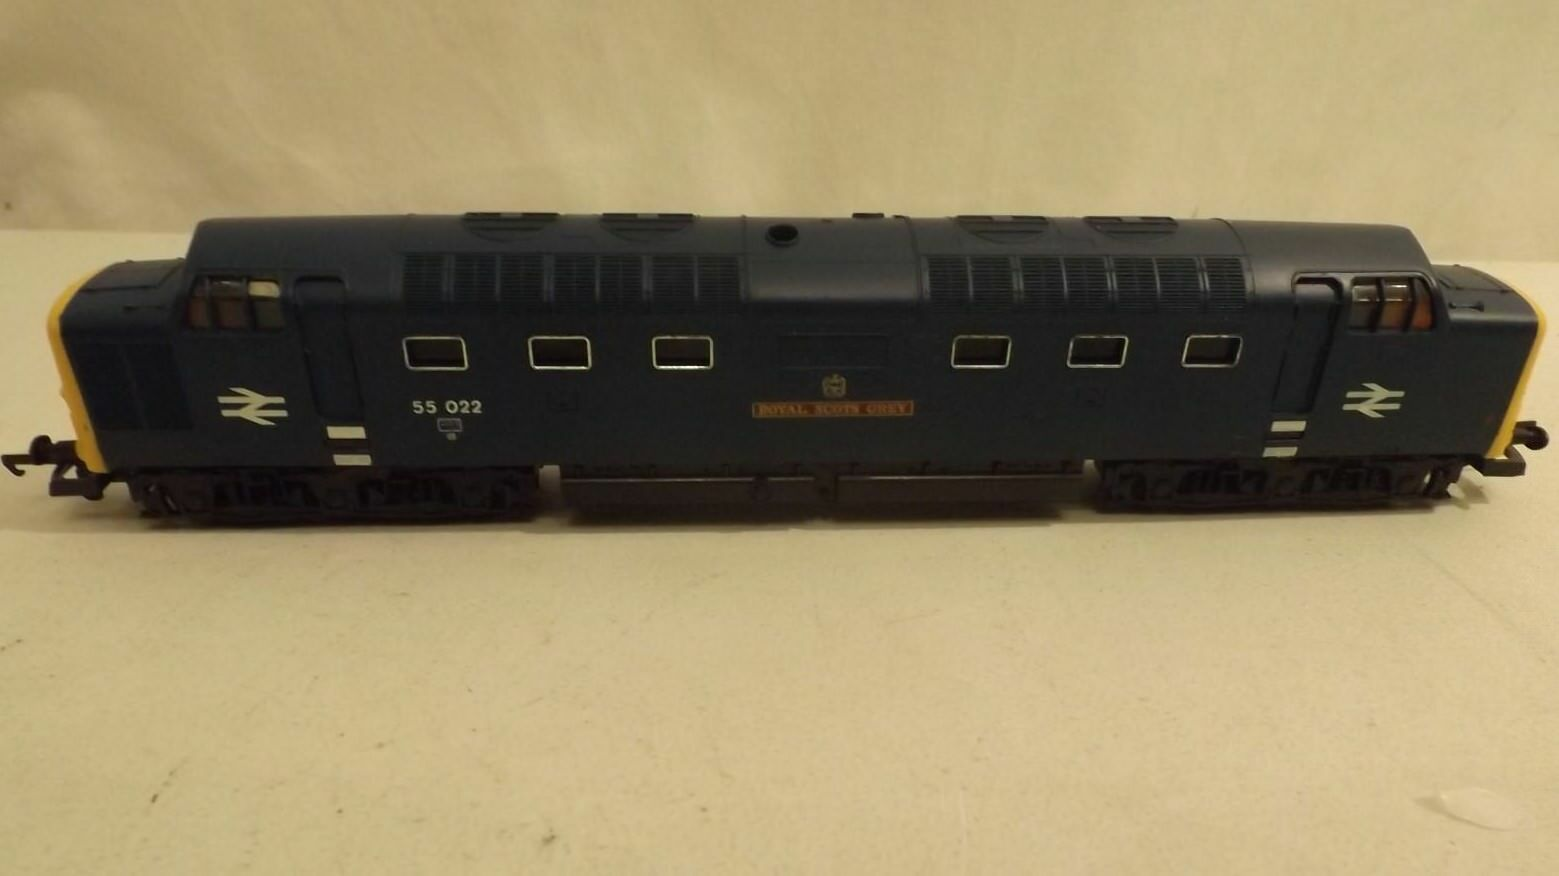 HO Lima Royal Scots Gris diesel engine in original box